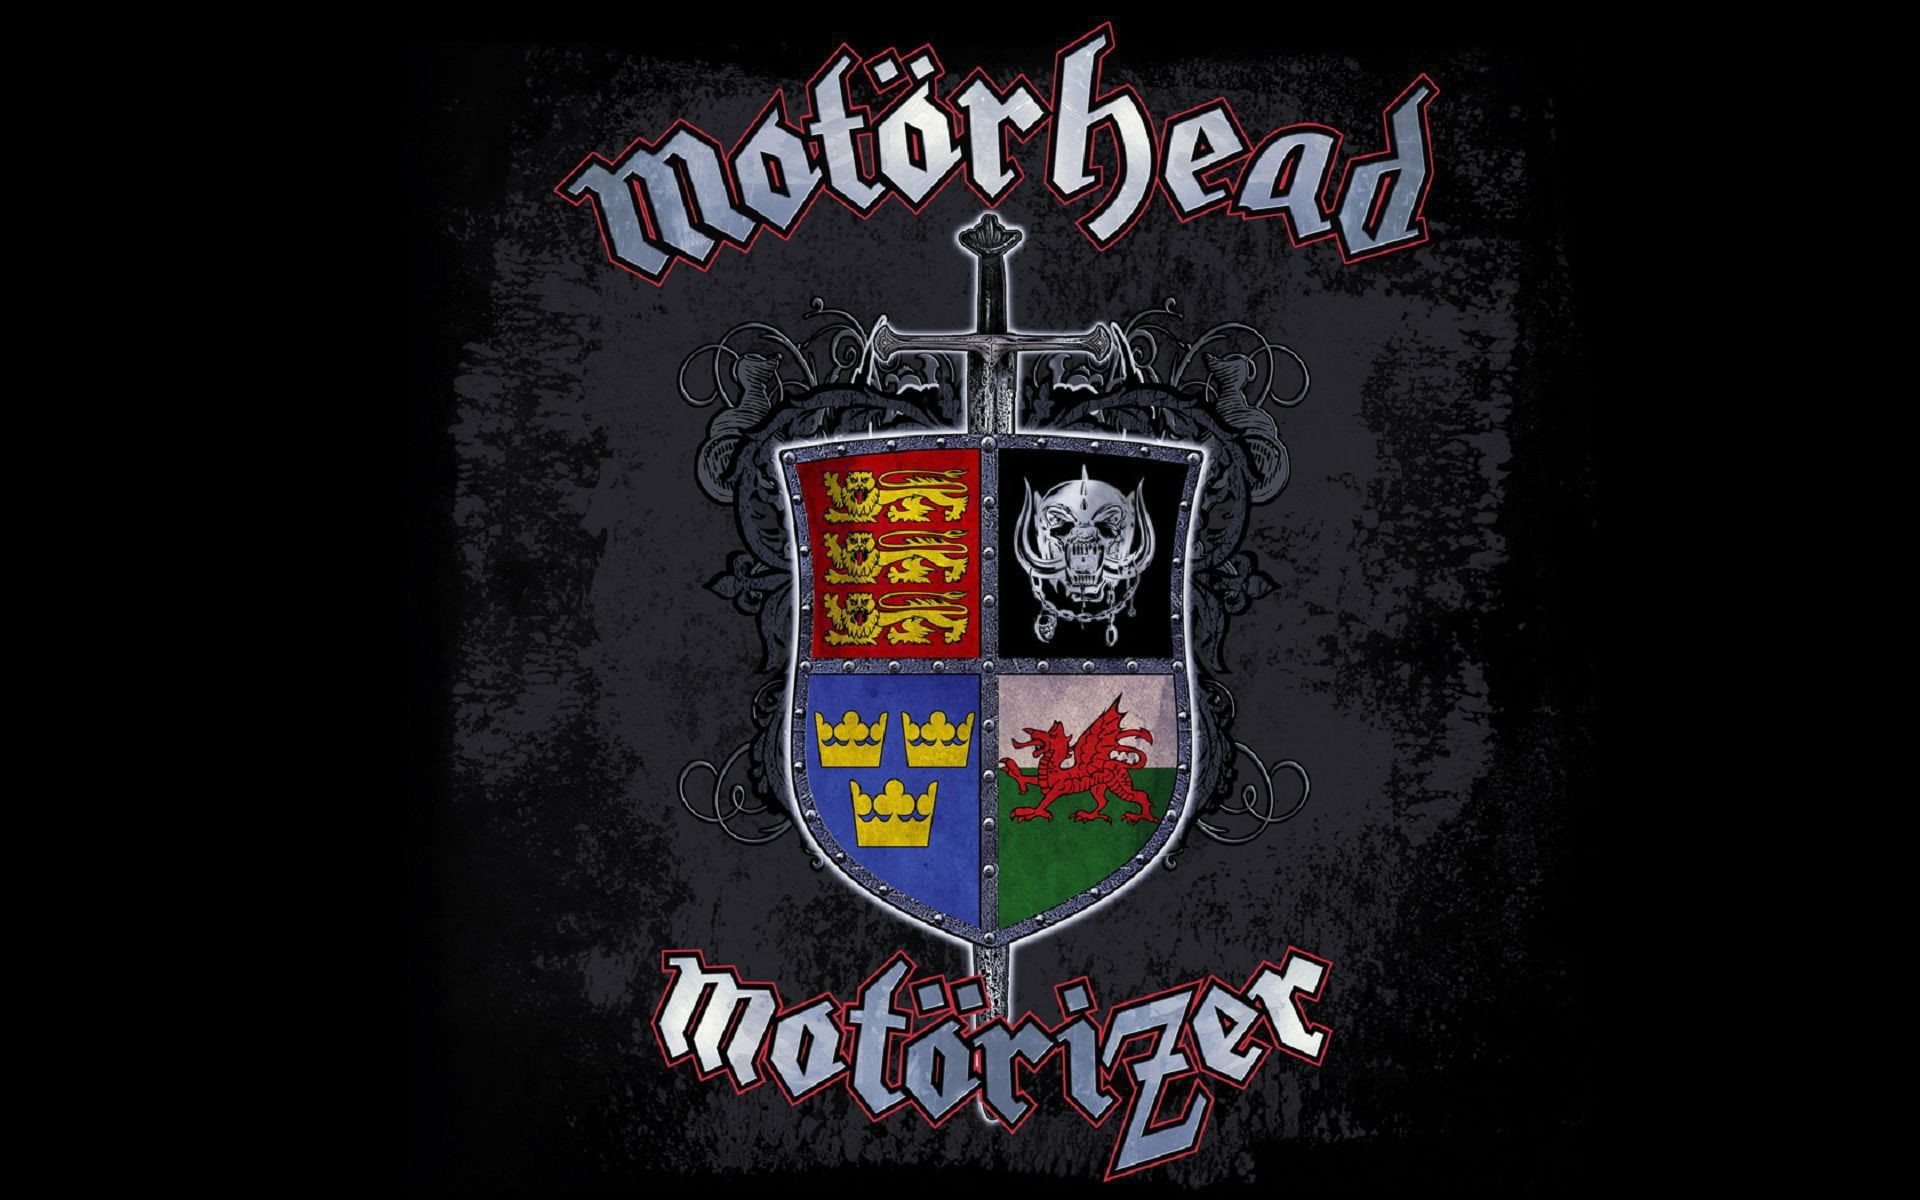 … Motörhead HD Wallpaper …